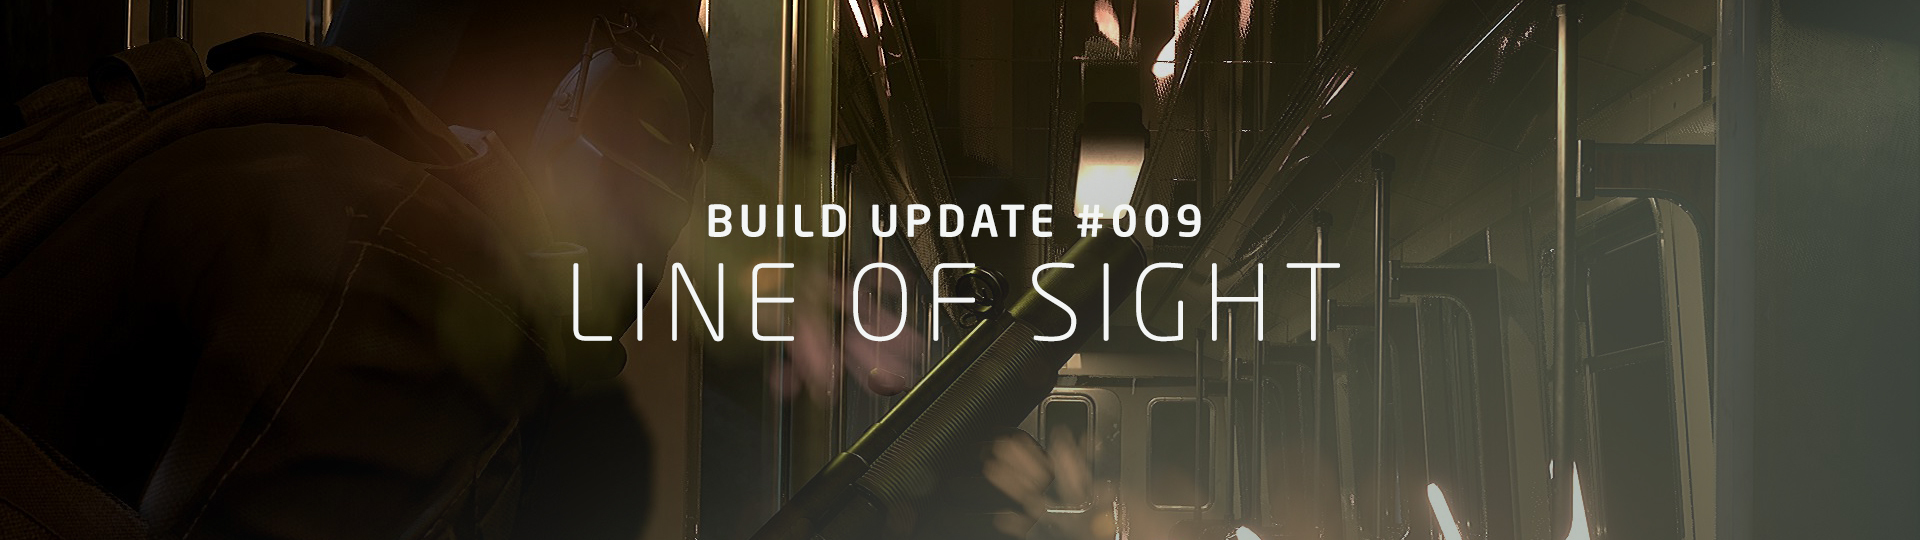 GROUND BRANCH :: BUILD UPDATE #009: Line of Sight